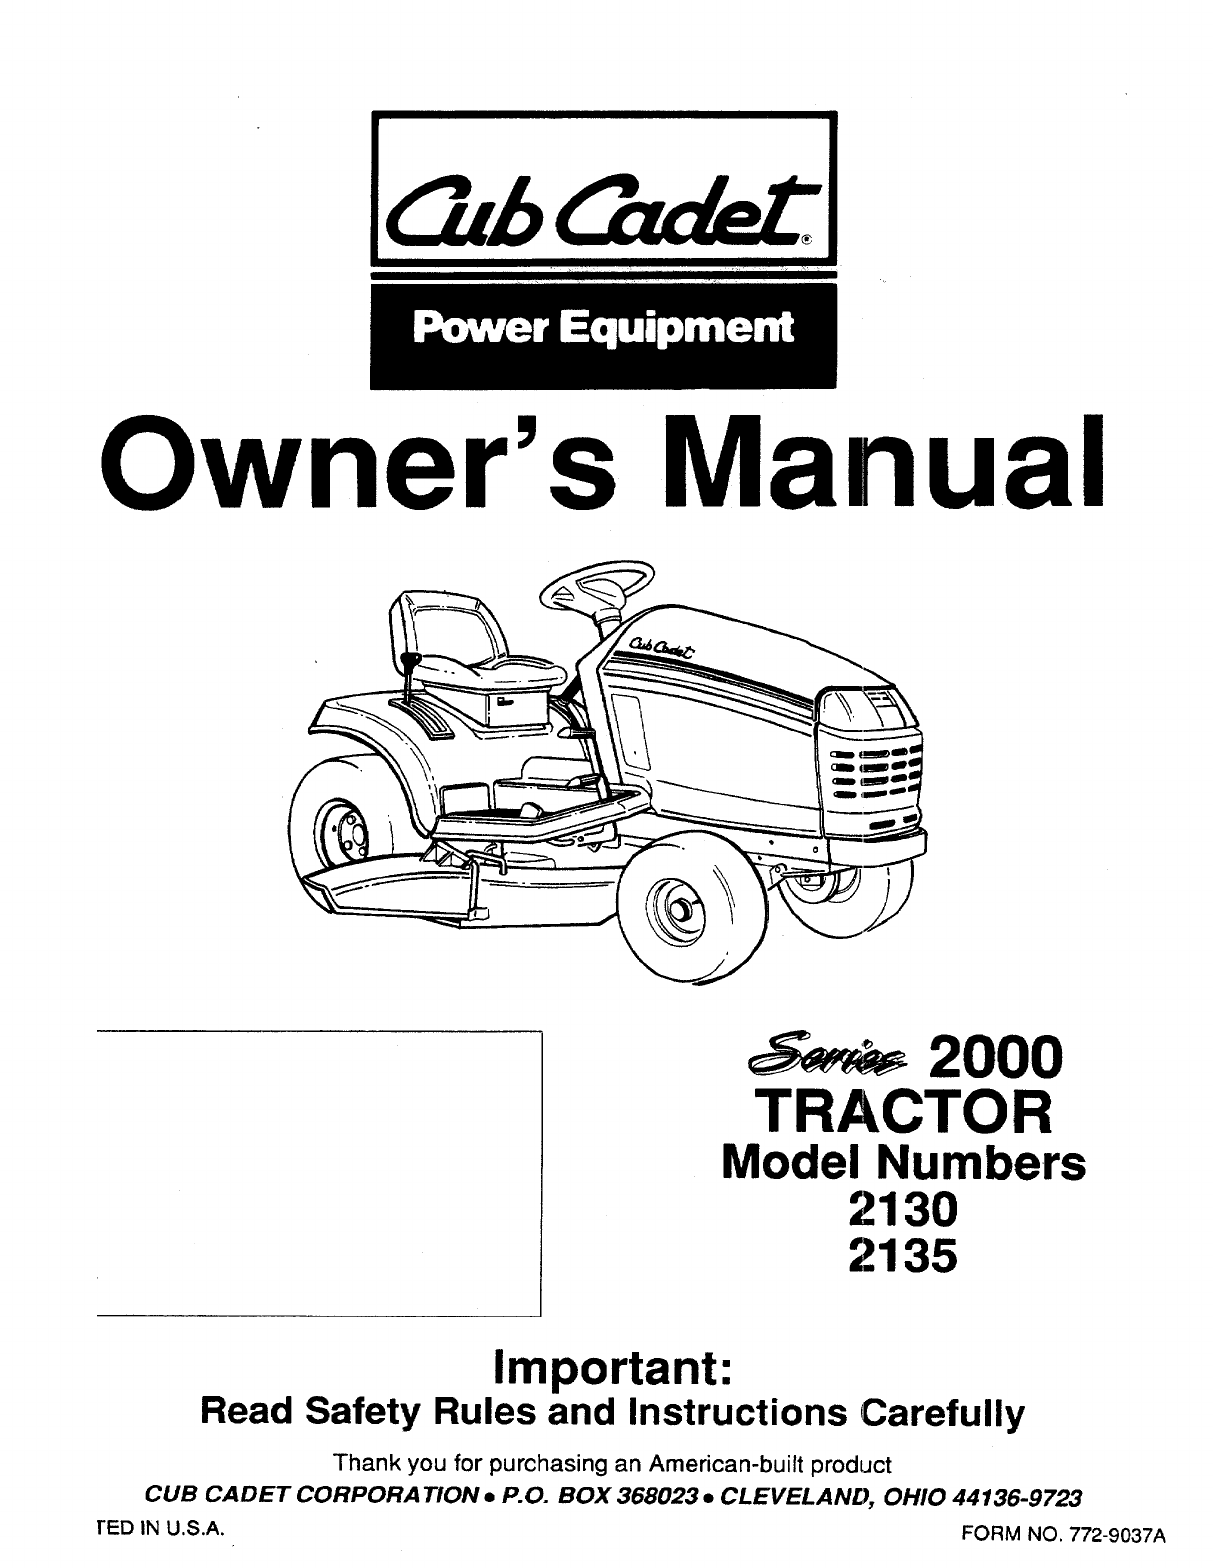 e345c7b4 52b0 3904 4d4c a2faabda8527 bg1 cub cadet 2130 wiring diagram questions & answers (with pictures cub cadet 2130 wiring diagram at reclaimingppi.co